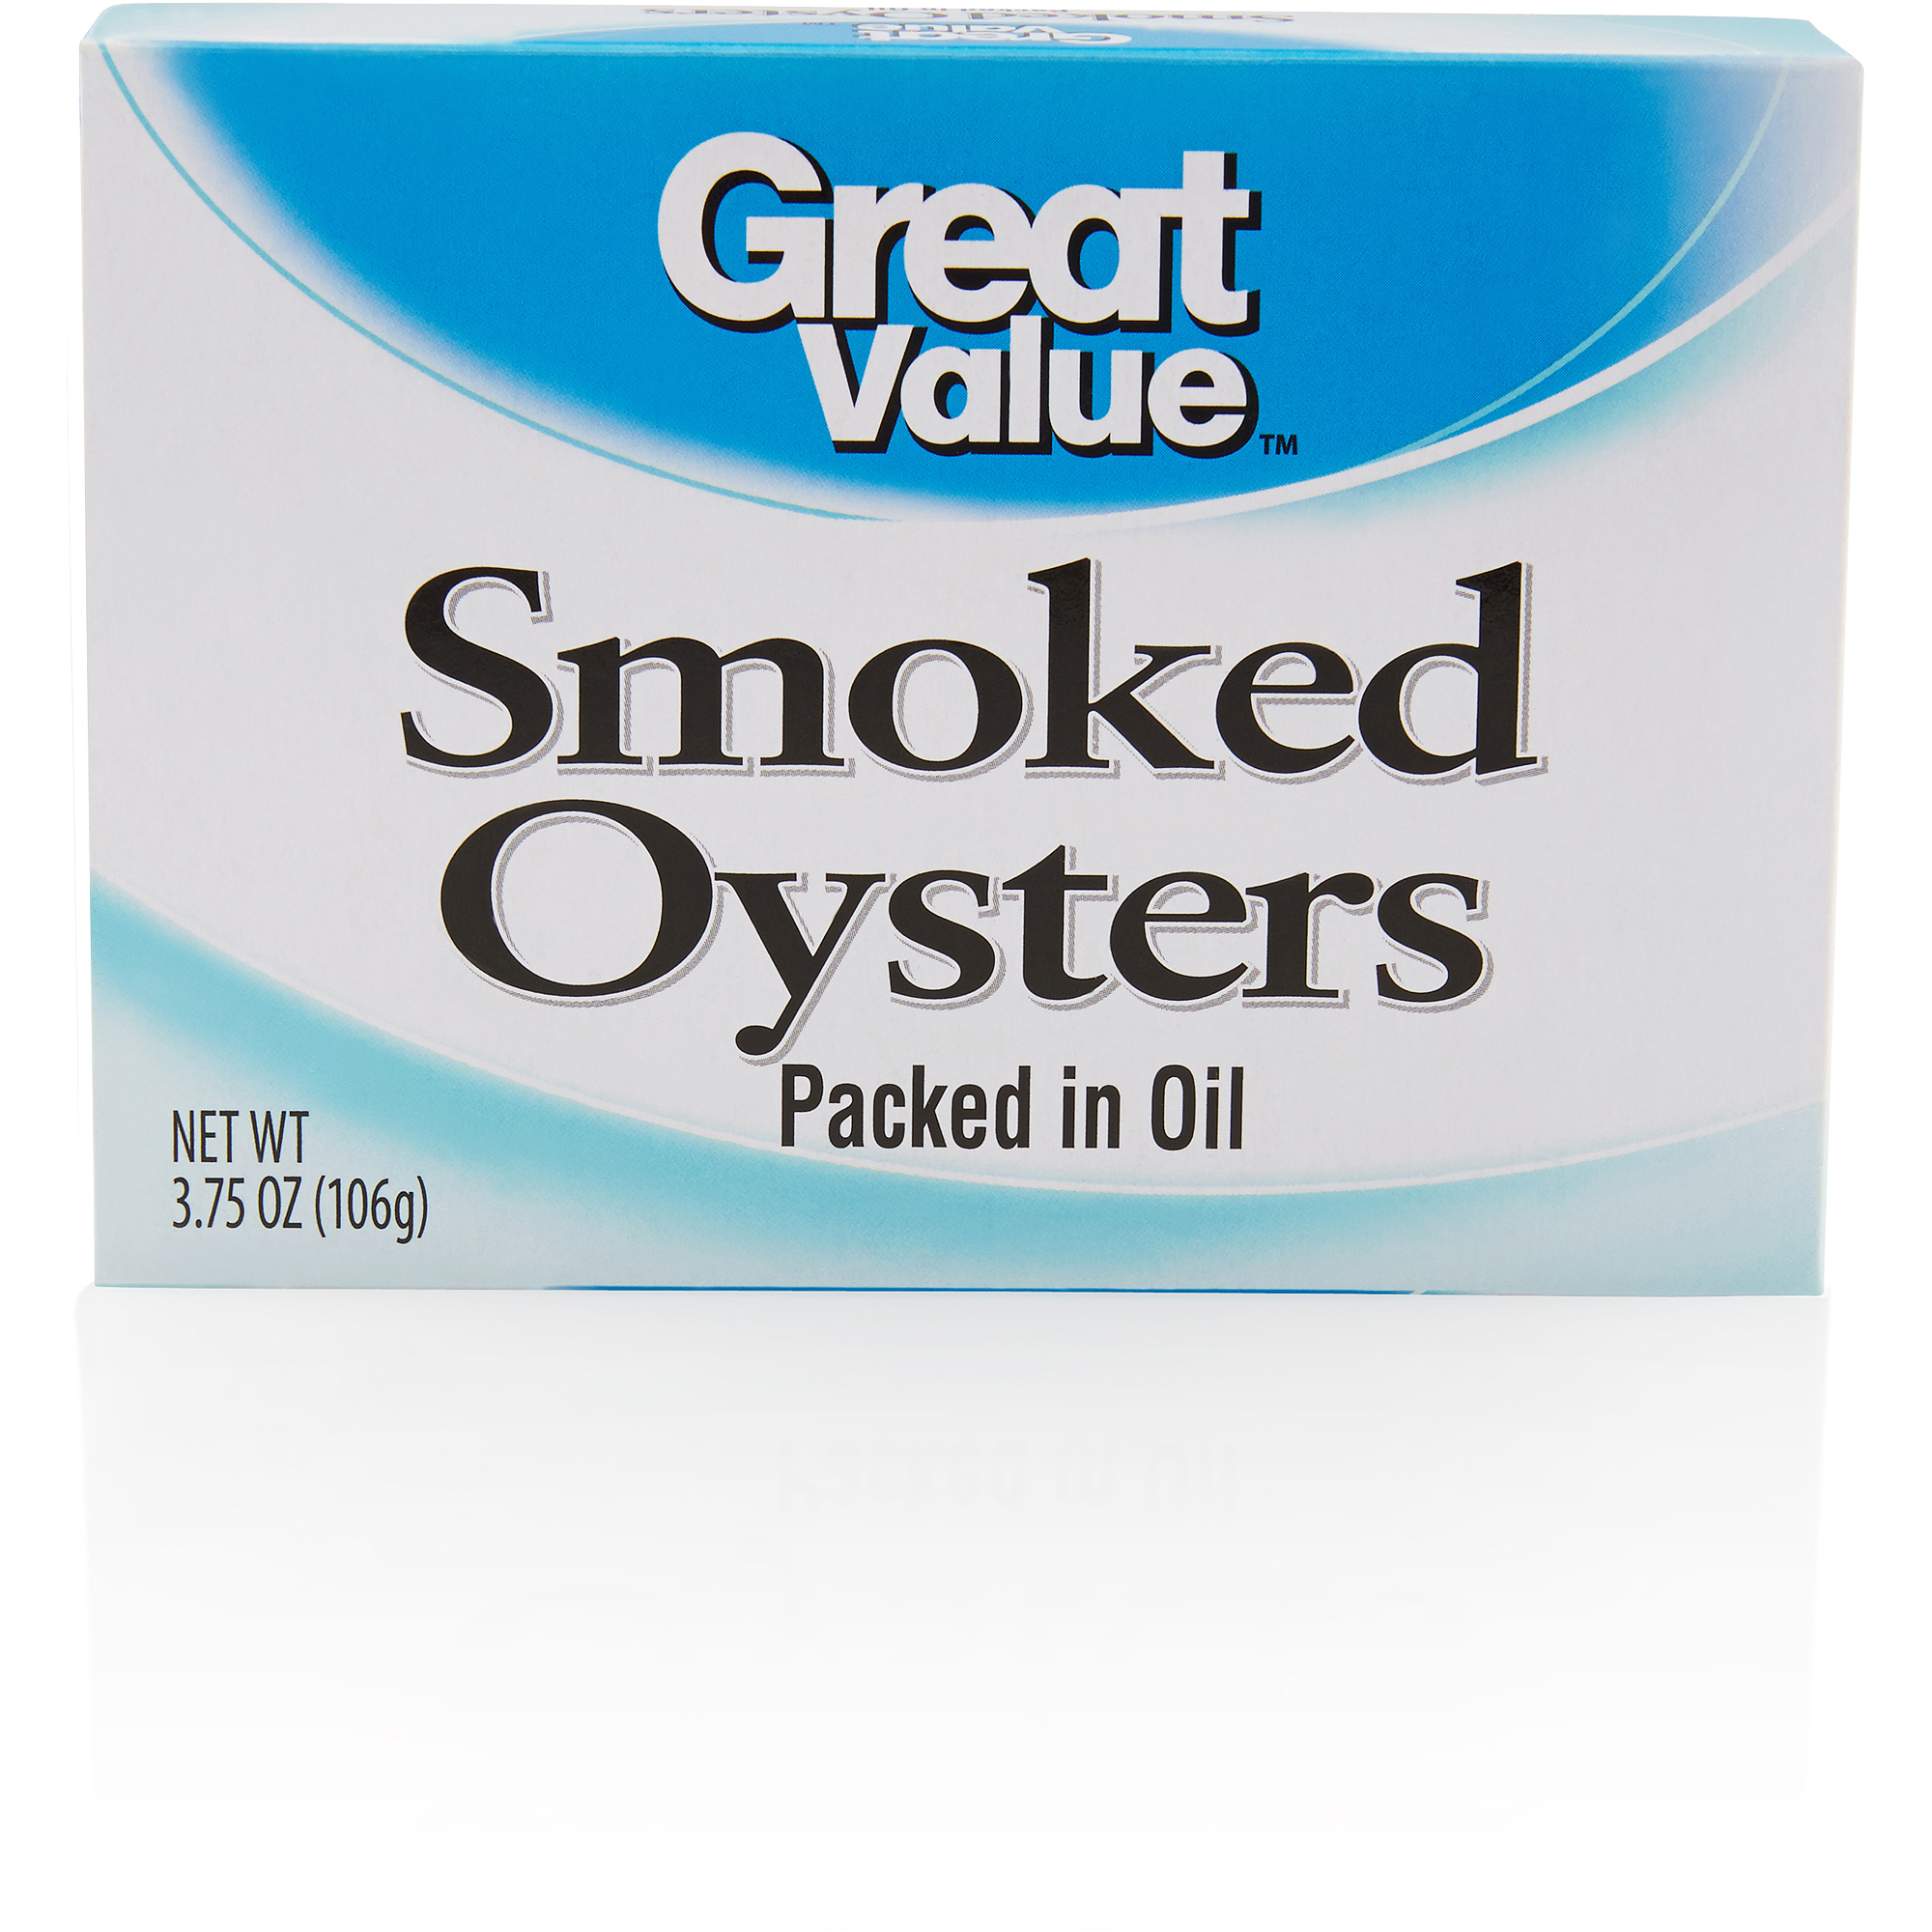 Great Value Smoked Oysters in Oil, 3.75 oz by Wal-Mart Stores, Inc.